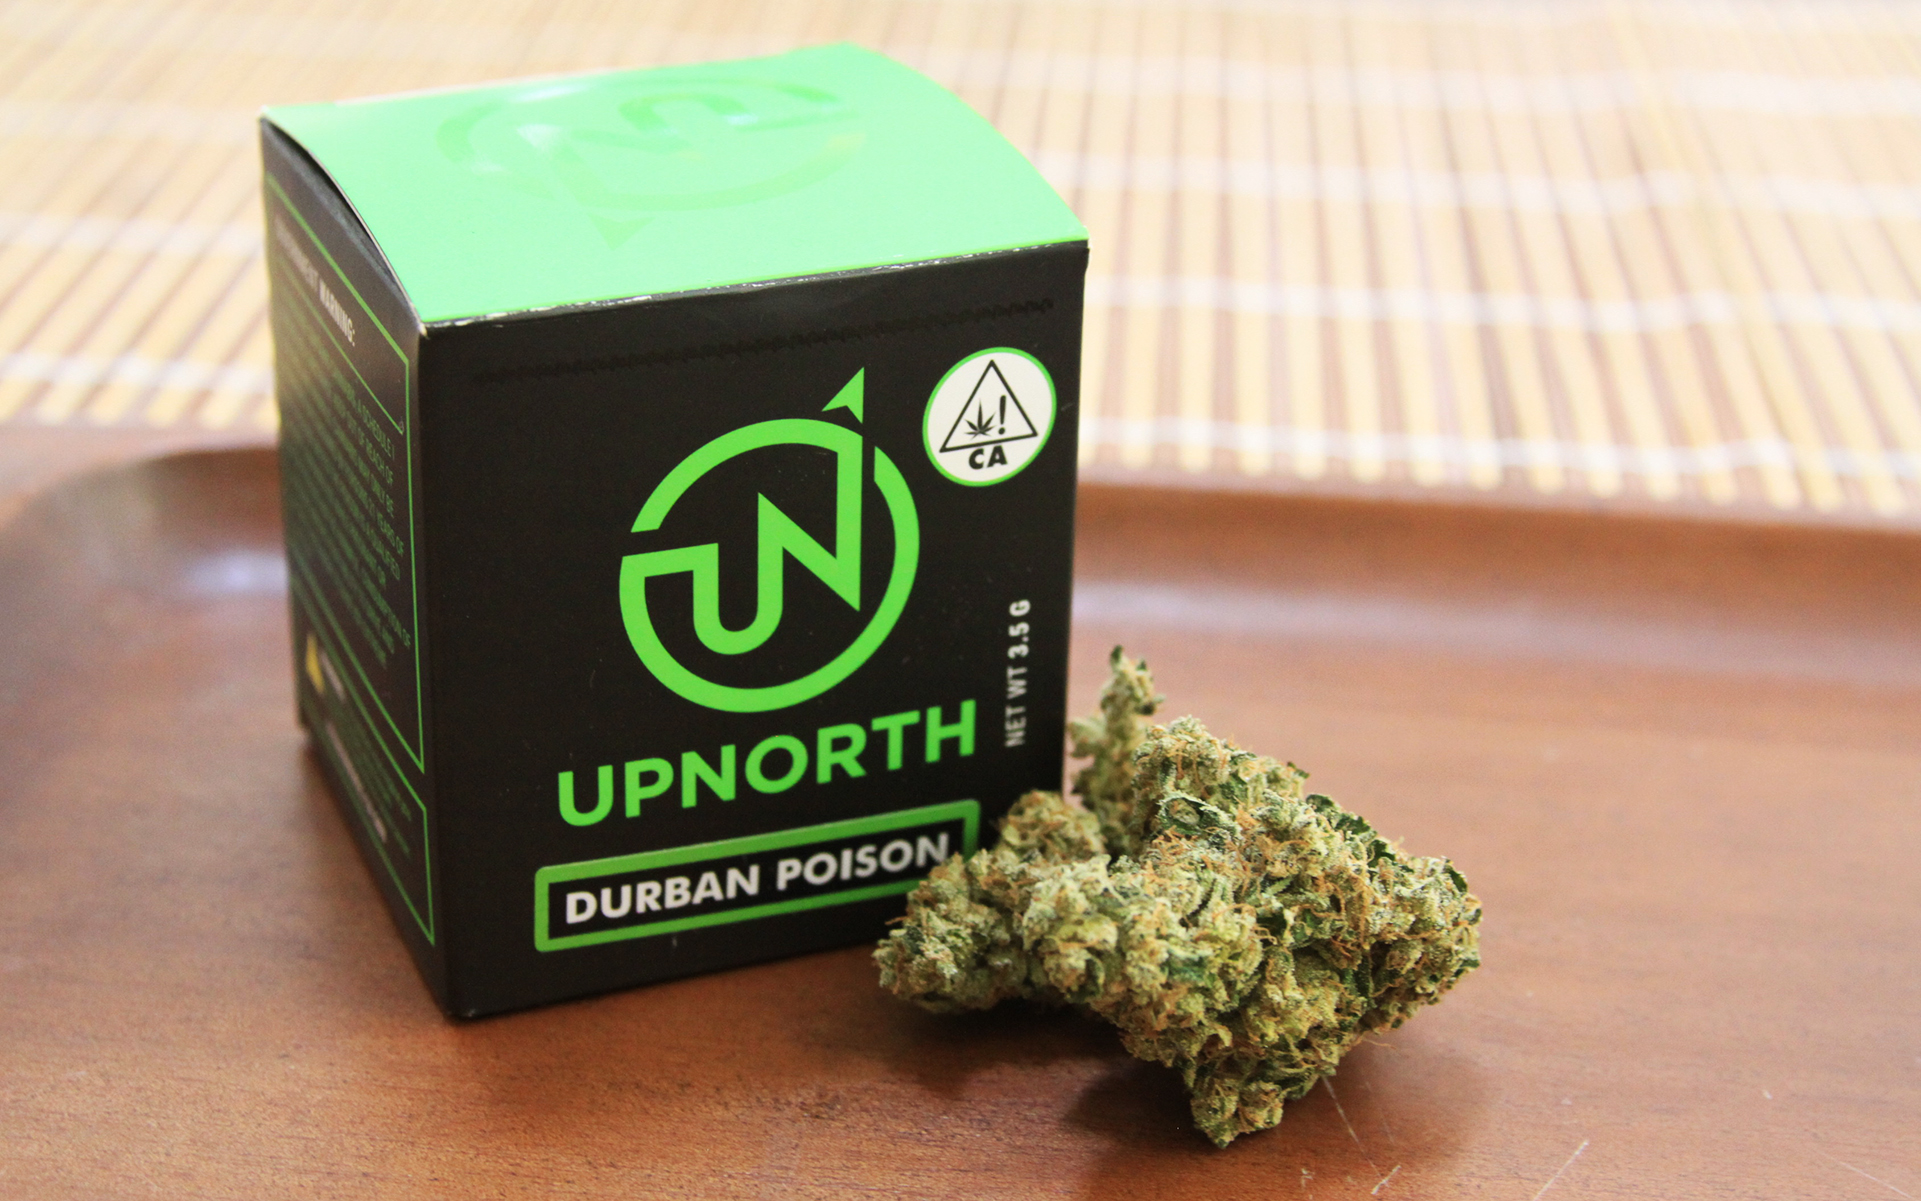 UpNorth is a leading flower brand that's passing increased testing standards. (Elise McDonough)